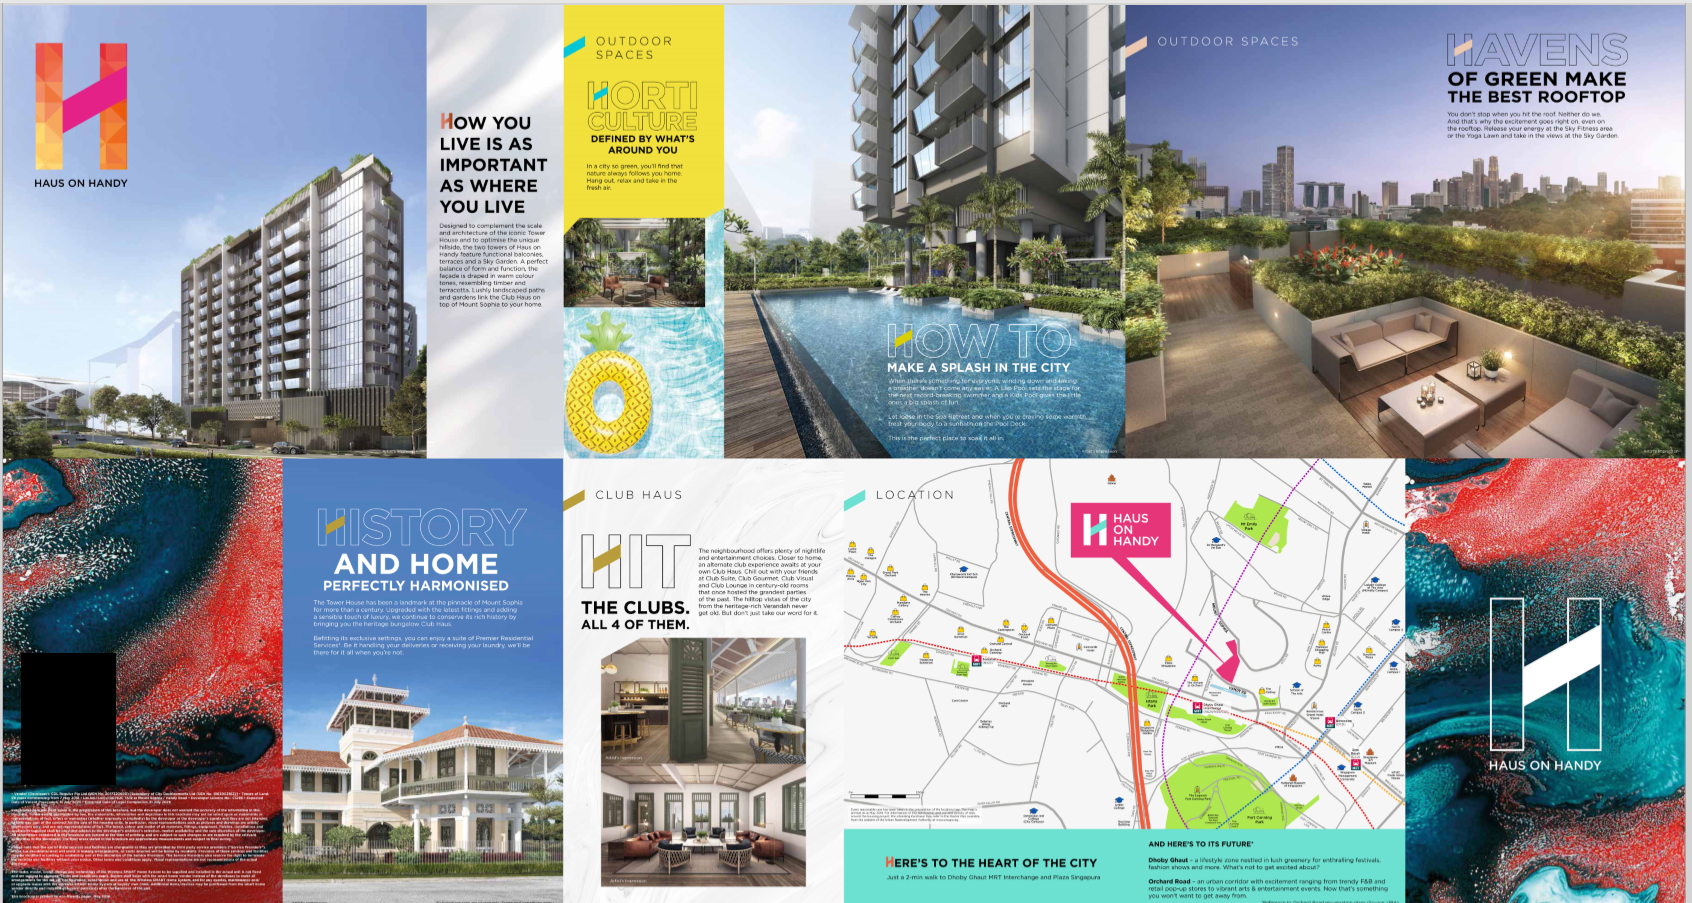 haus-on-handy-simplified-e-brochure-cover-page-singapore